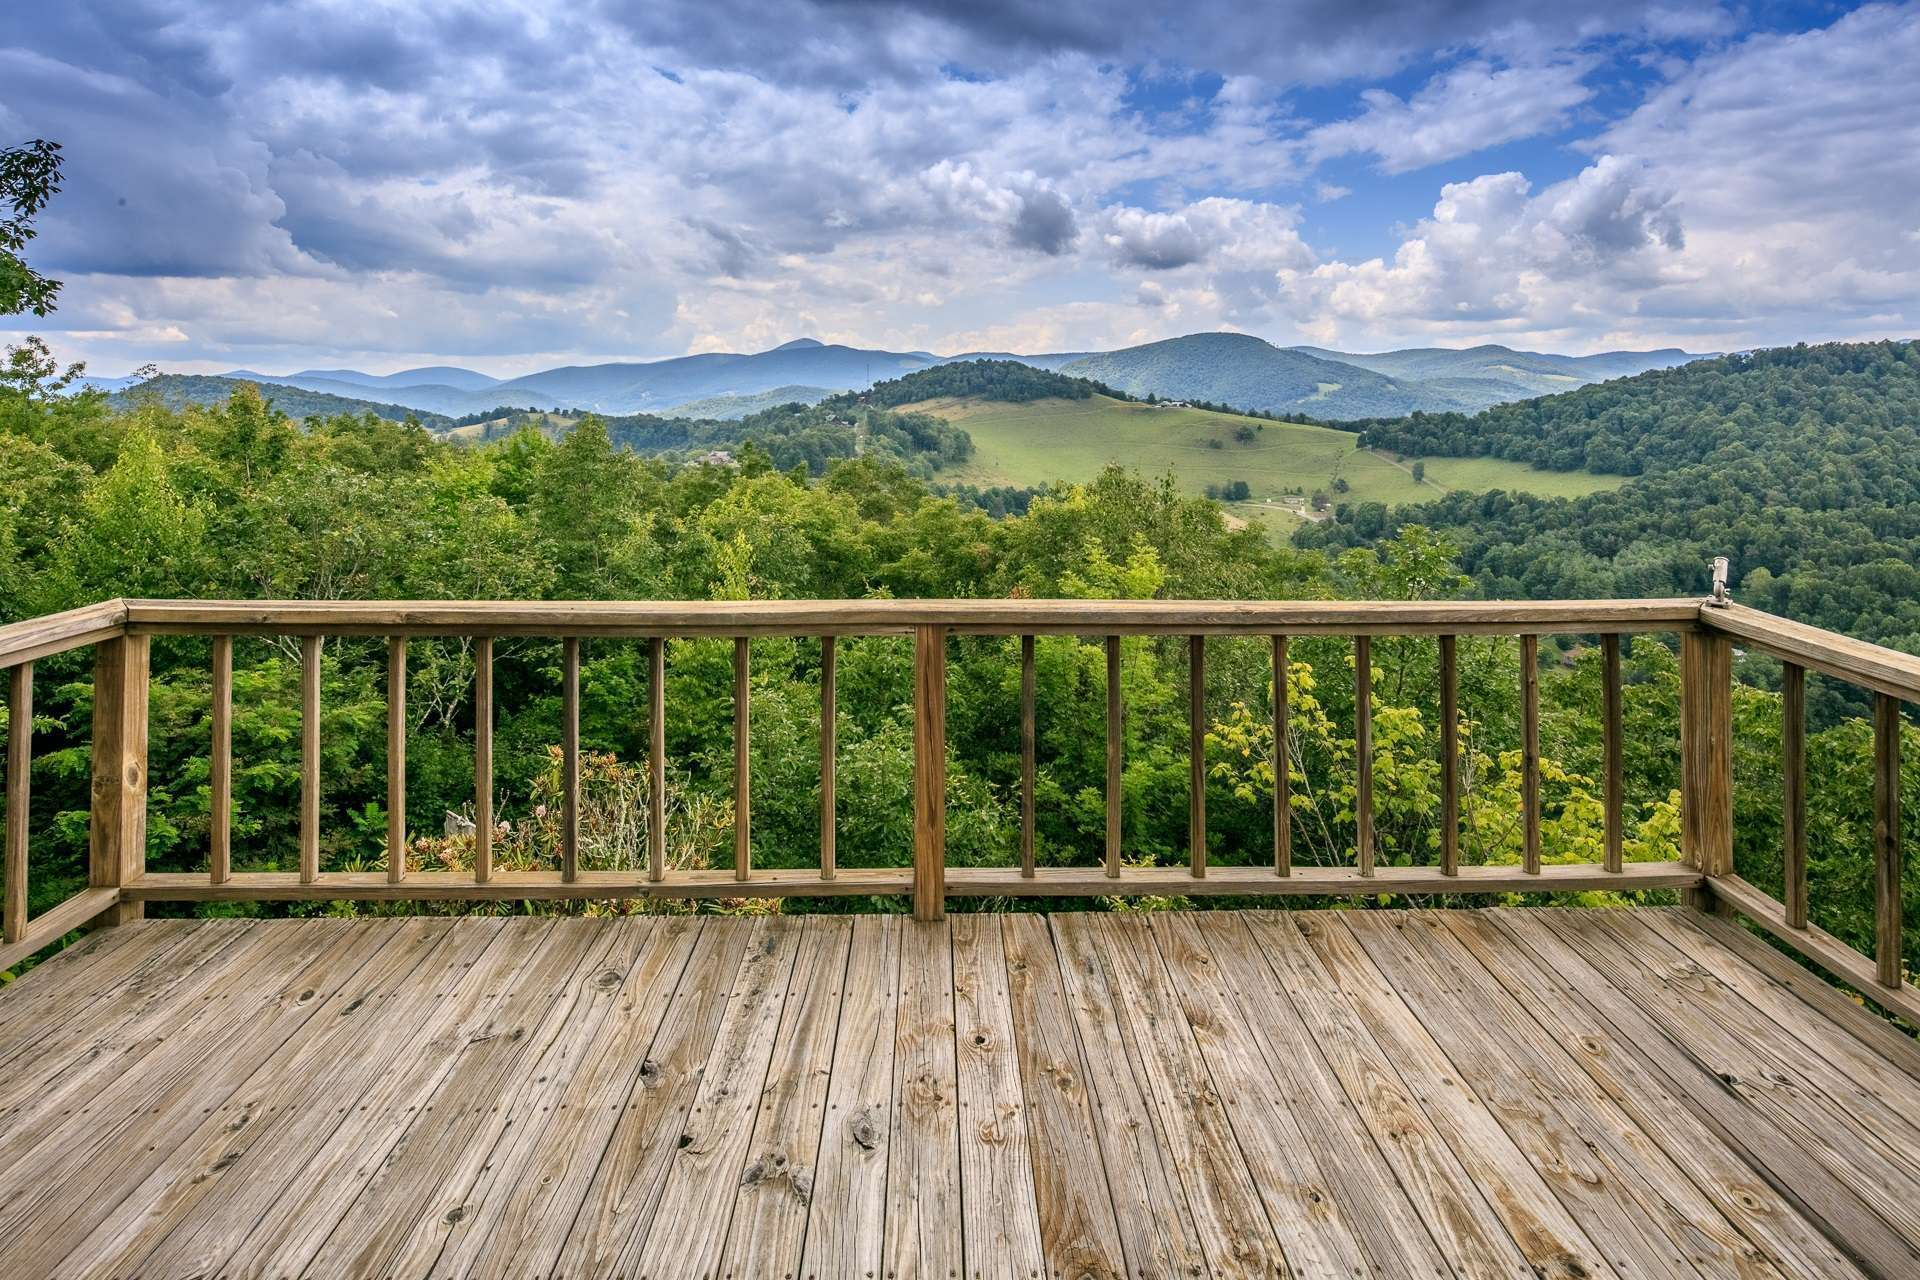 Your  guests will  love having their own  place to enjoy the views  on the guesthouse deck.